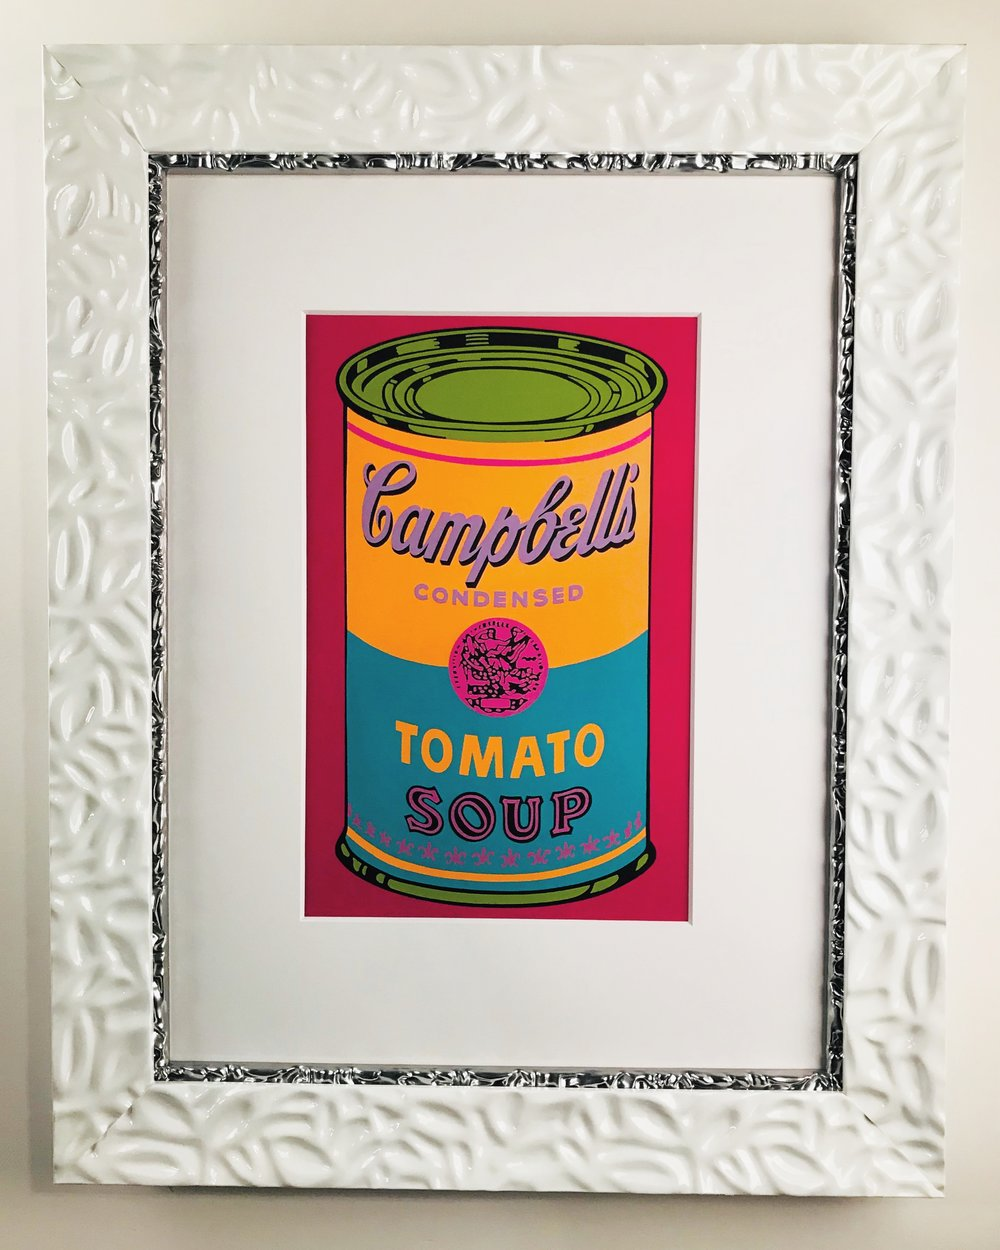 Tomato Soup by Andy Warhol framed in gloss white with graphite insert.